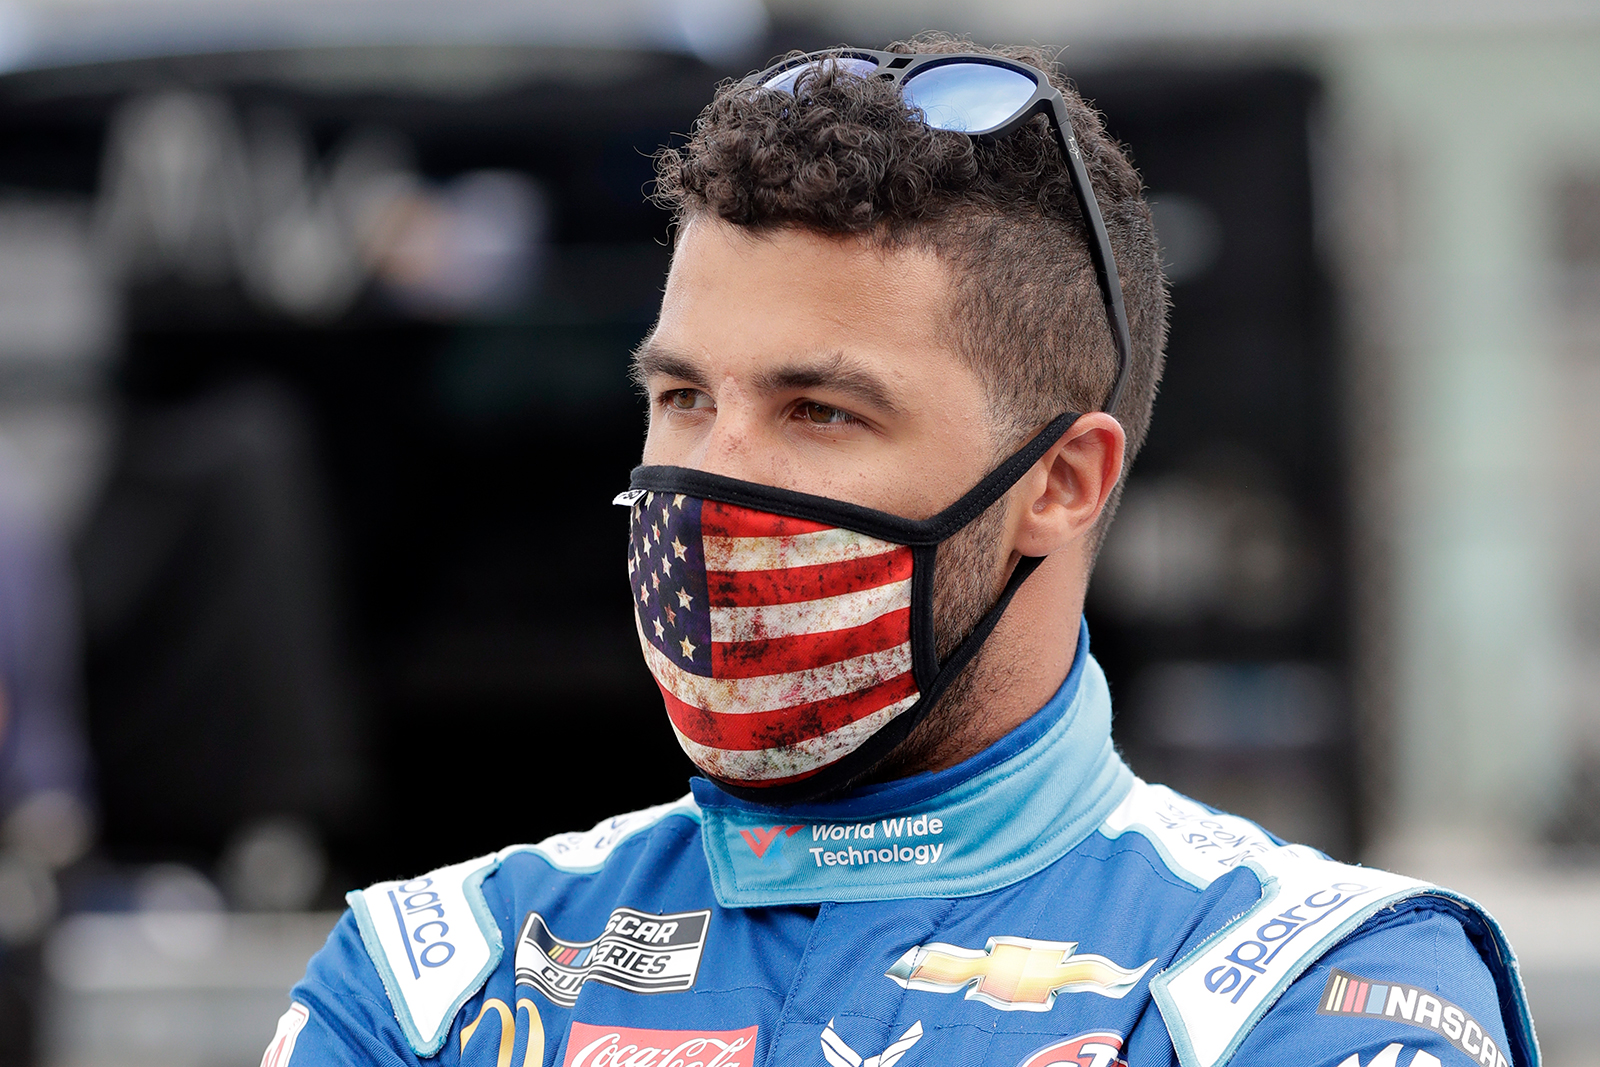 Bubba Wallace waits for the start of a NASCAR Cup Series auto race in Homestead, Florida on June 14.